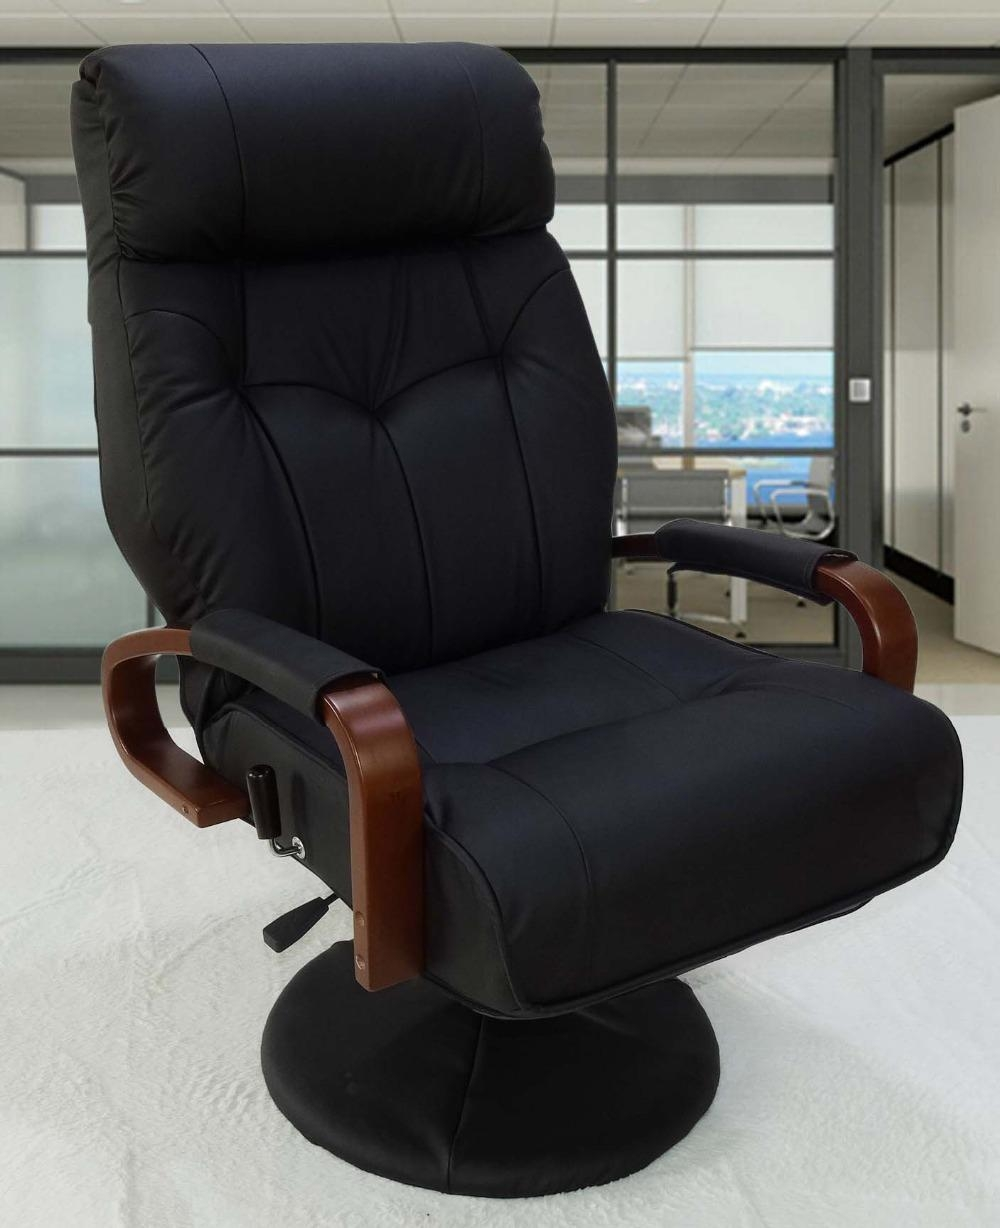 Popular Leather Recliner Chair Buy Cheap Leather Recliner Chair Inside Sofa Chair Recliner (Image 15 of 20)